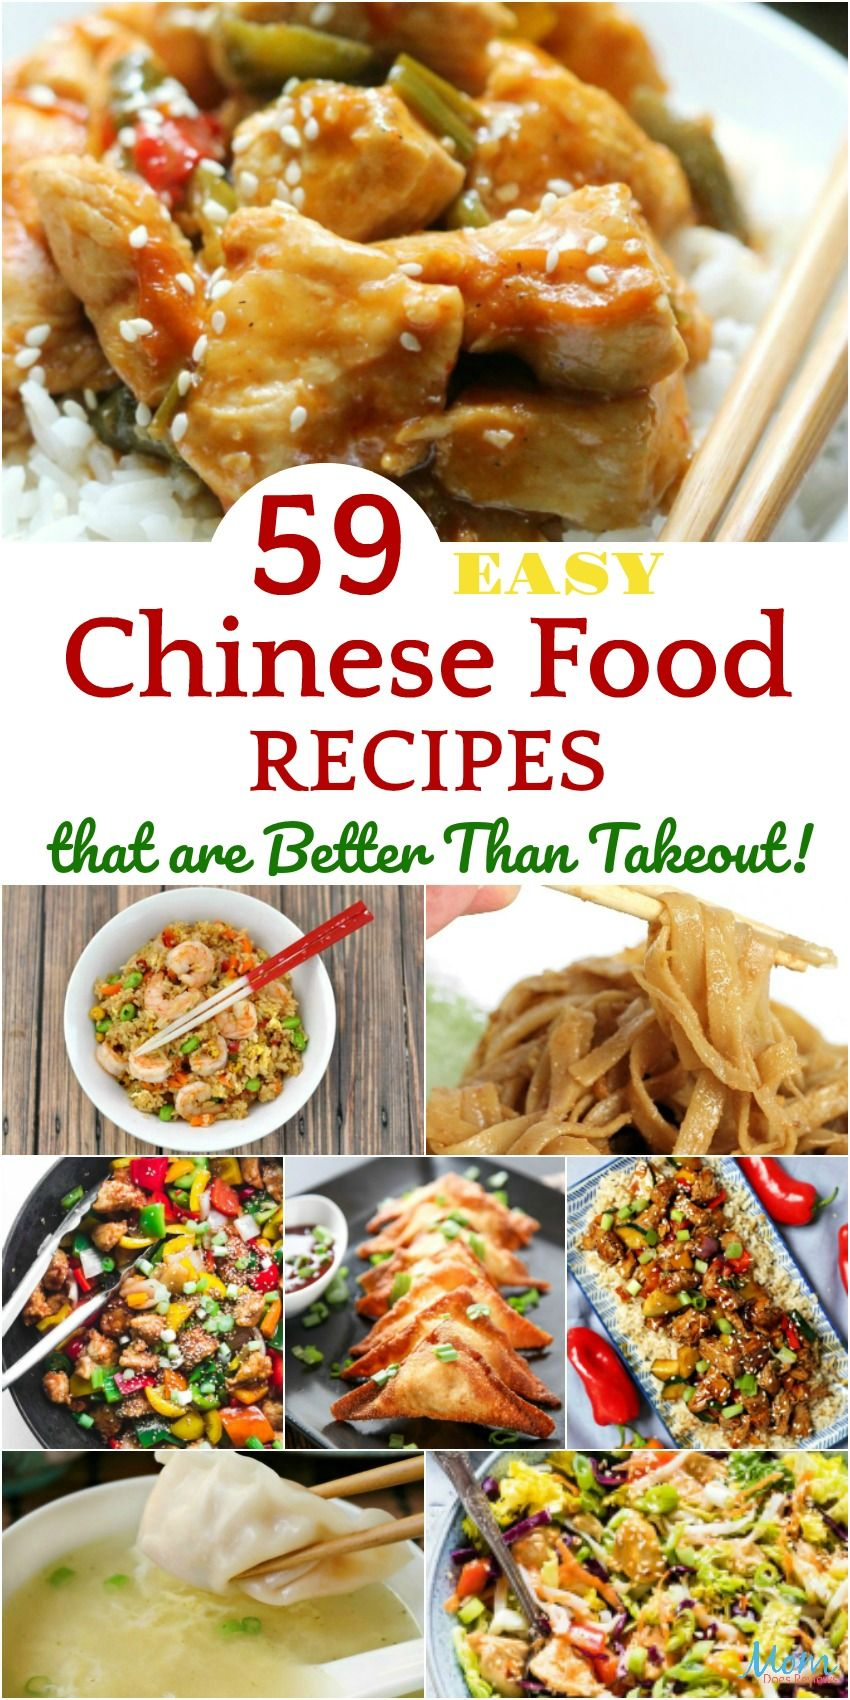 59 Easy Chinese Food Recipes That Are Better Than Takeout In 2020 Easy Chinese Recipes Homemade Chinese Food Chinese Cooking